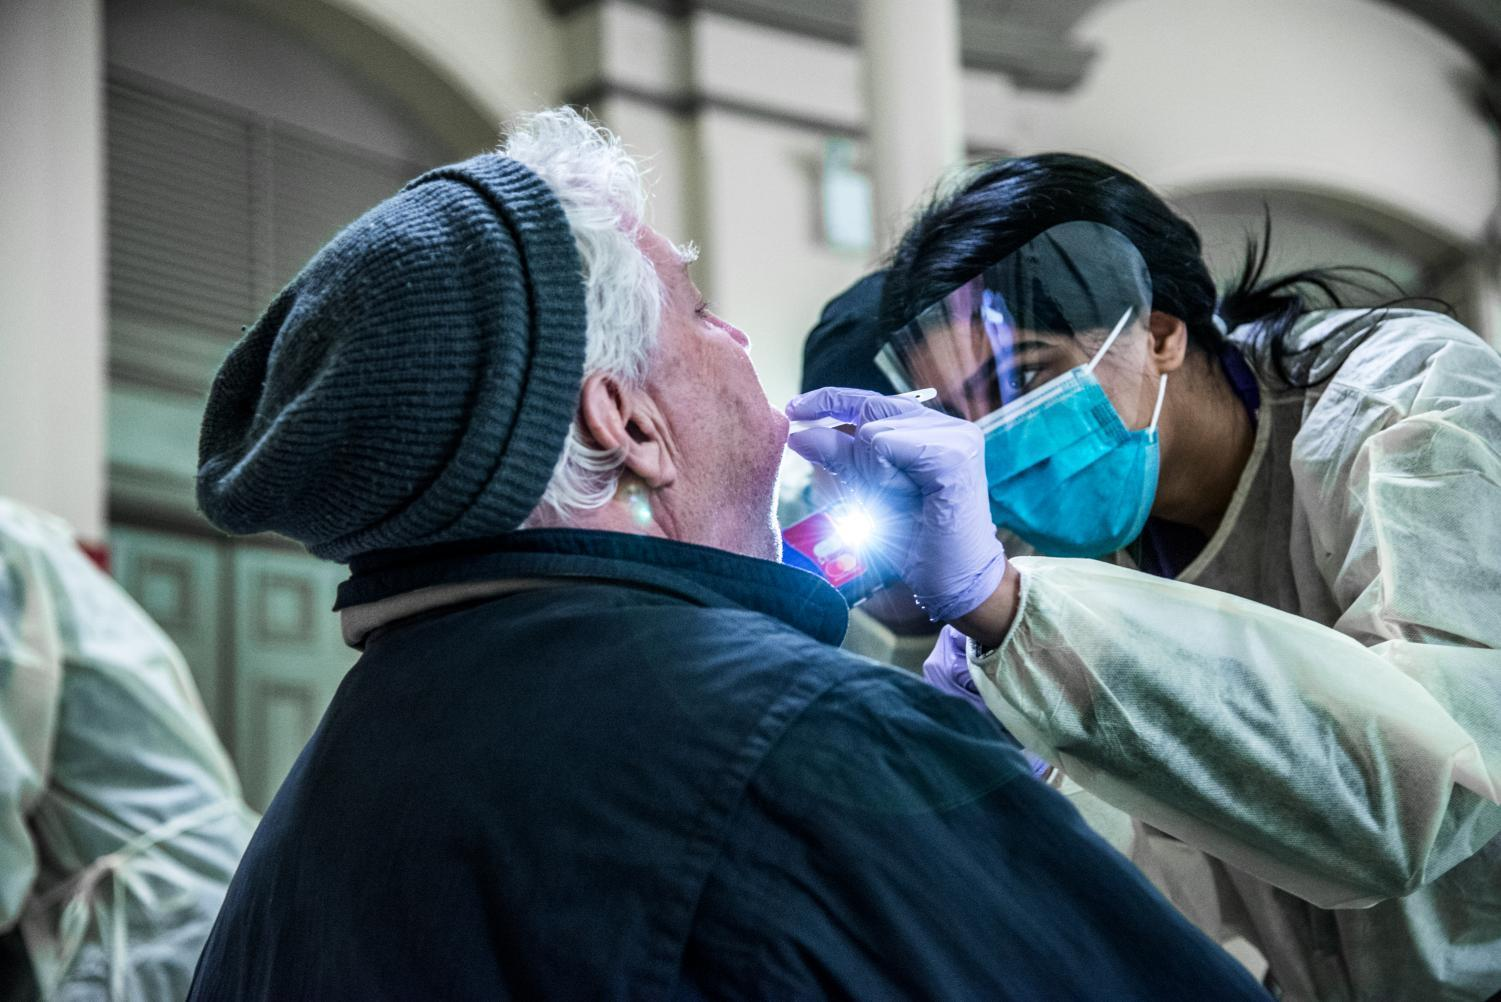 Second-year College of Dentistry student Amera Al-Faleh examines a patient's teeth at an outreach event, while another student shines a phone flashlight to give a better view.